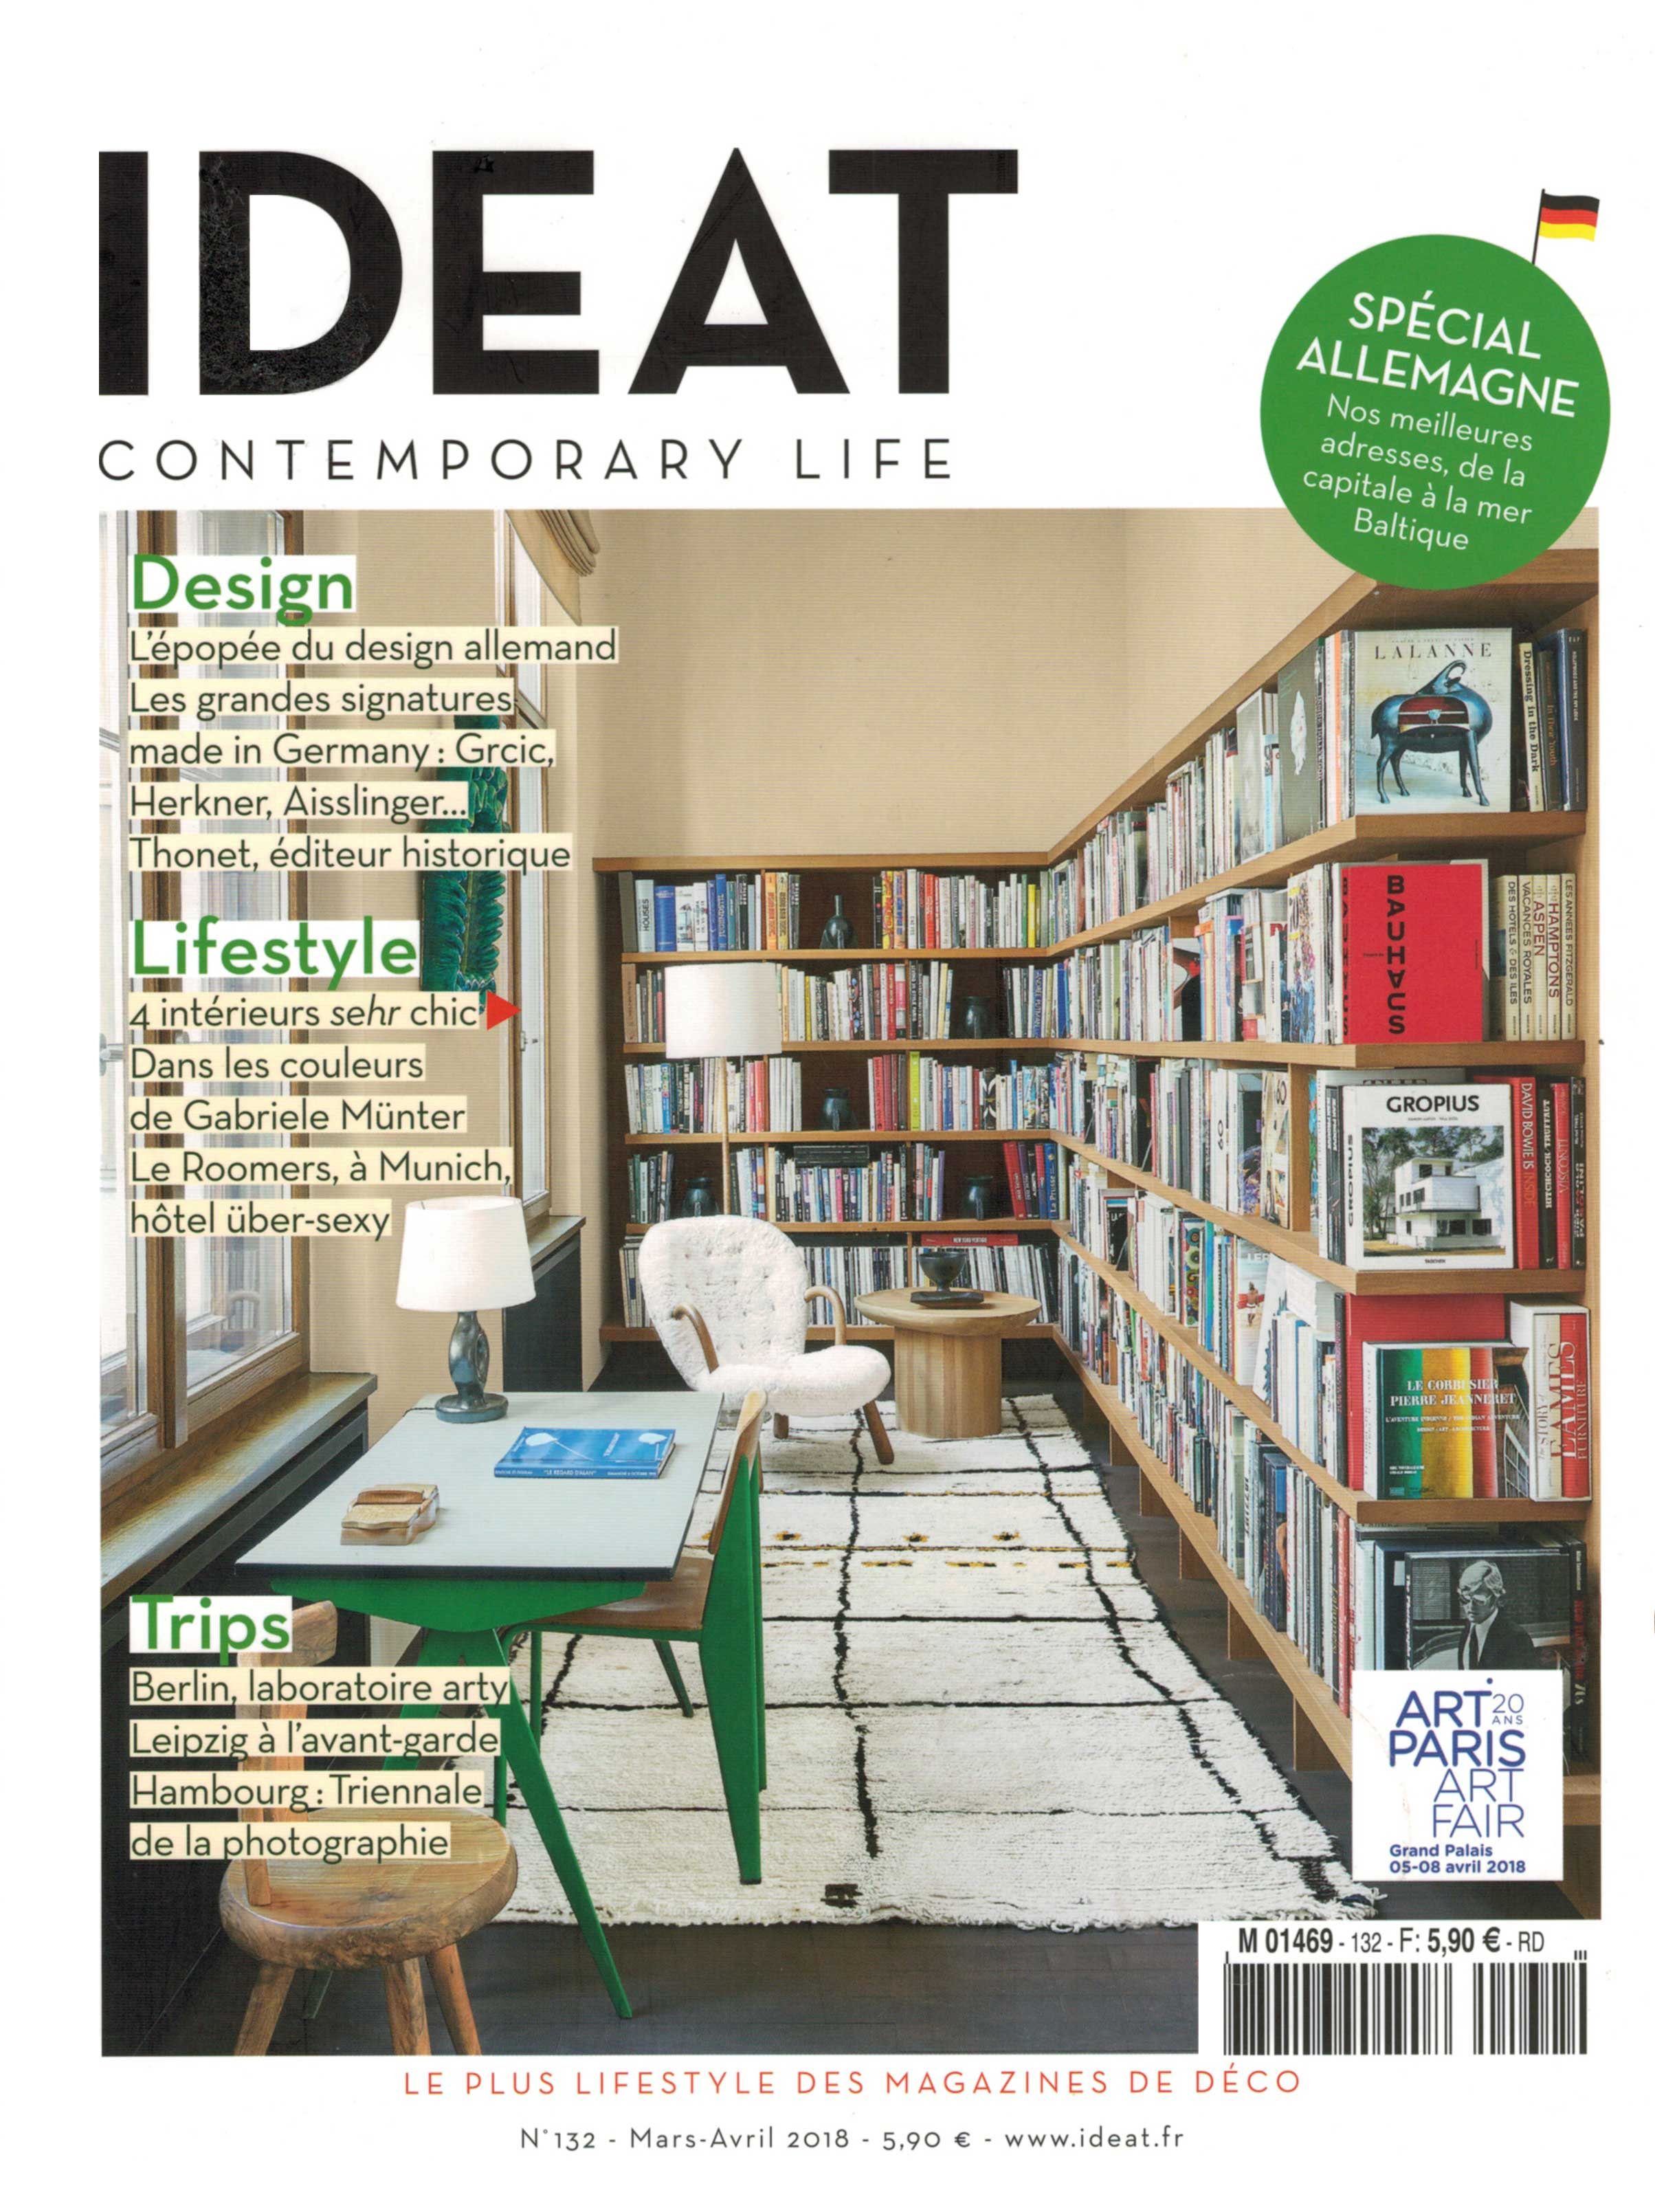 181203_IDEAT_COVER_Fr05122018.jpg